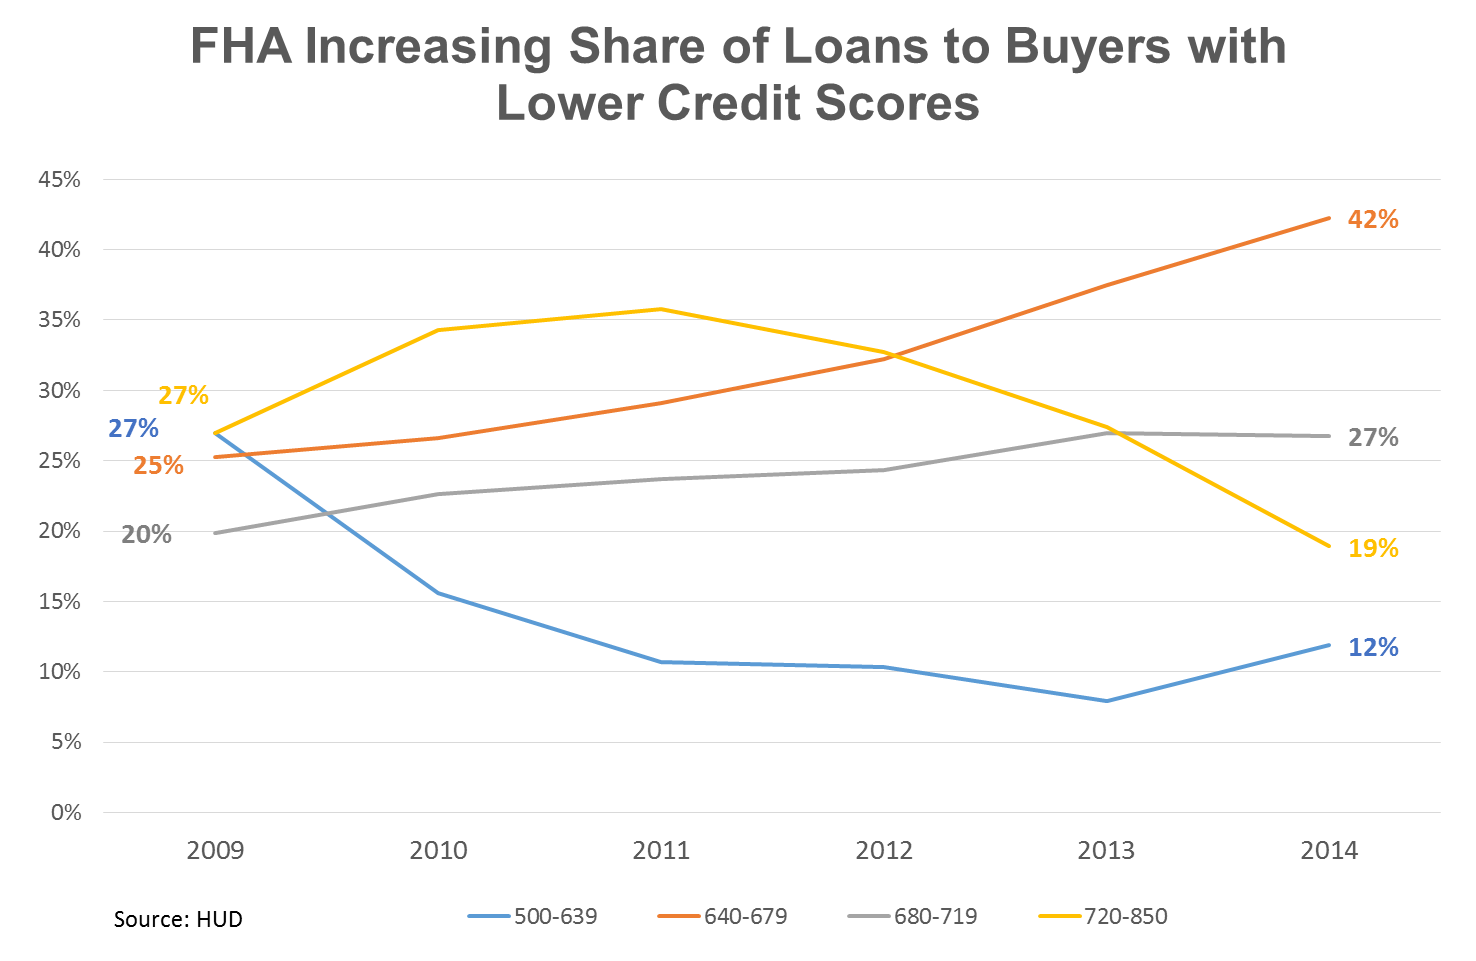 FHA-Increasing-Share-of-Loans-to-Buyers-with-Lower-Credit-Scores